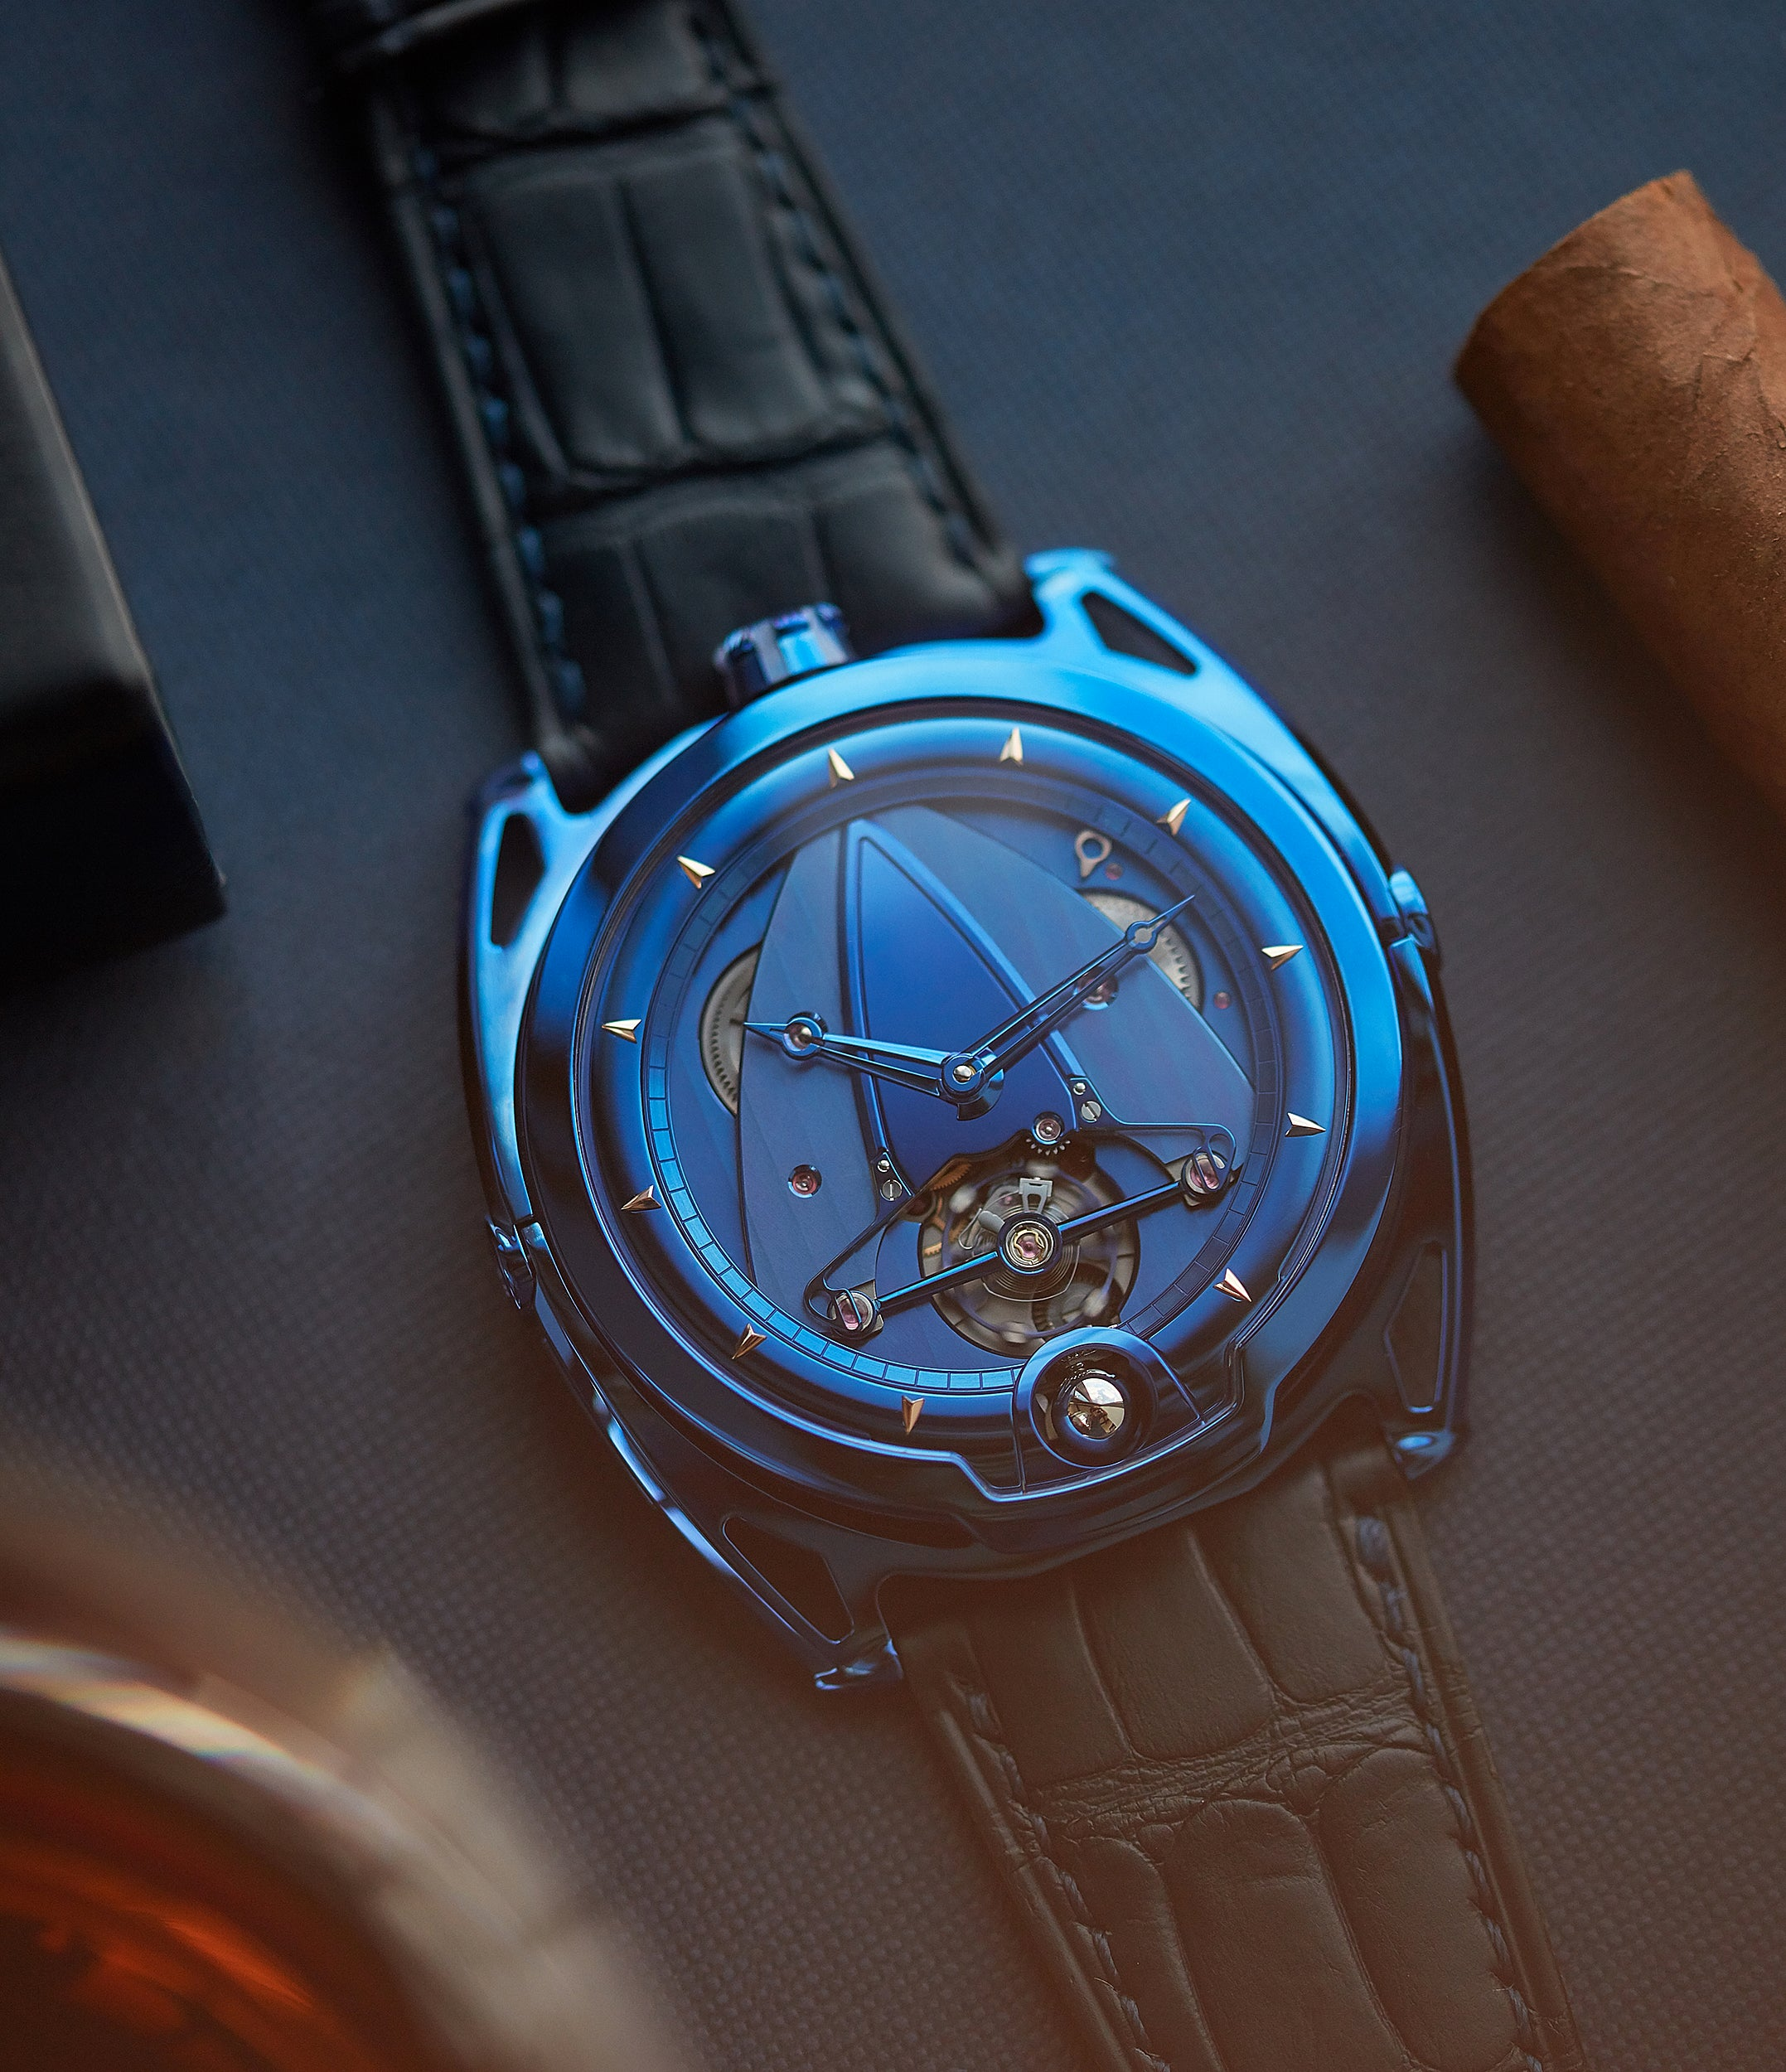 pre-owned De Bethune DB28 Kind of Blue titanium rare limited edition independent watchmaker for sale at A Collected Man London UK specilaist of rare watches